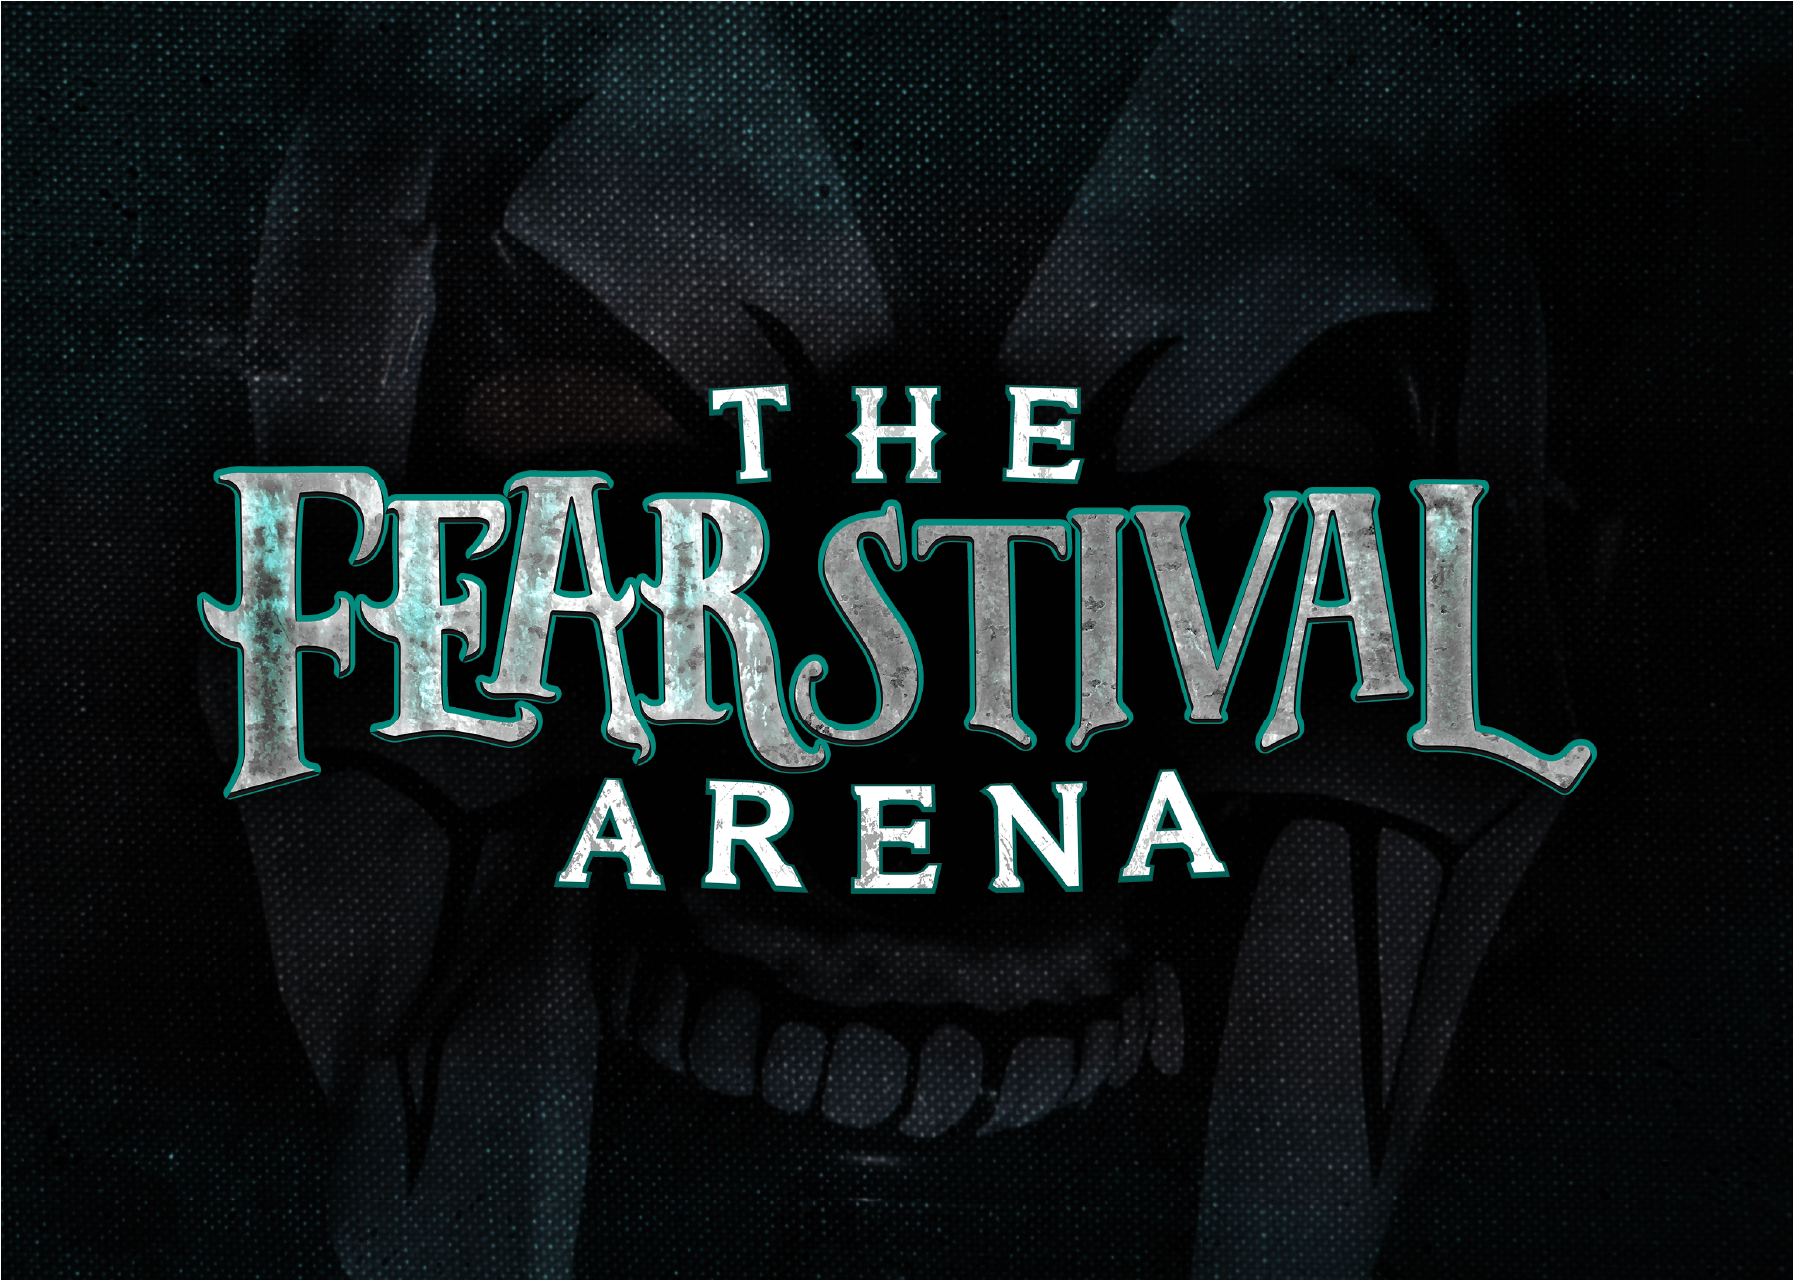 The FEARSTIVAL Arena